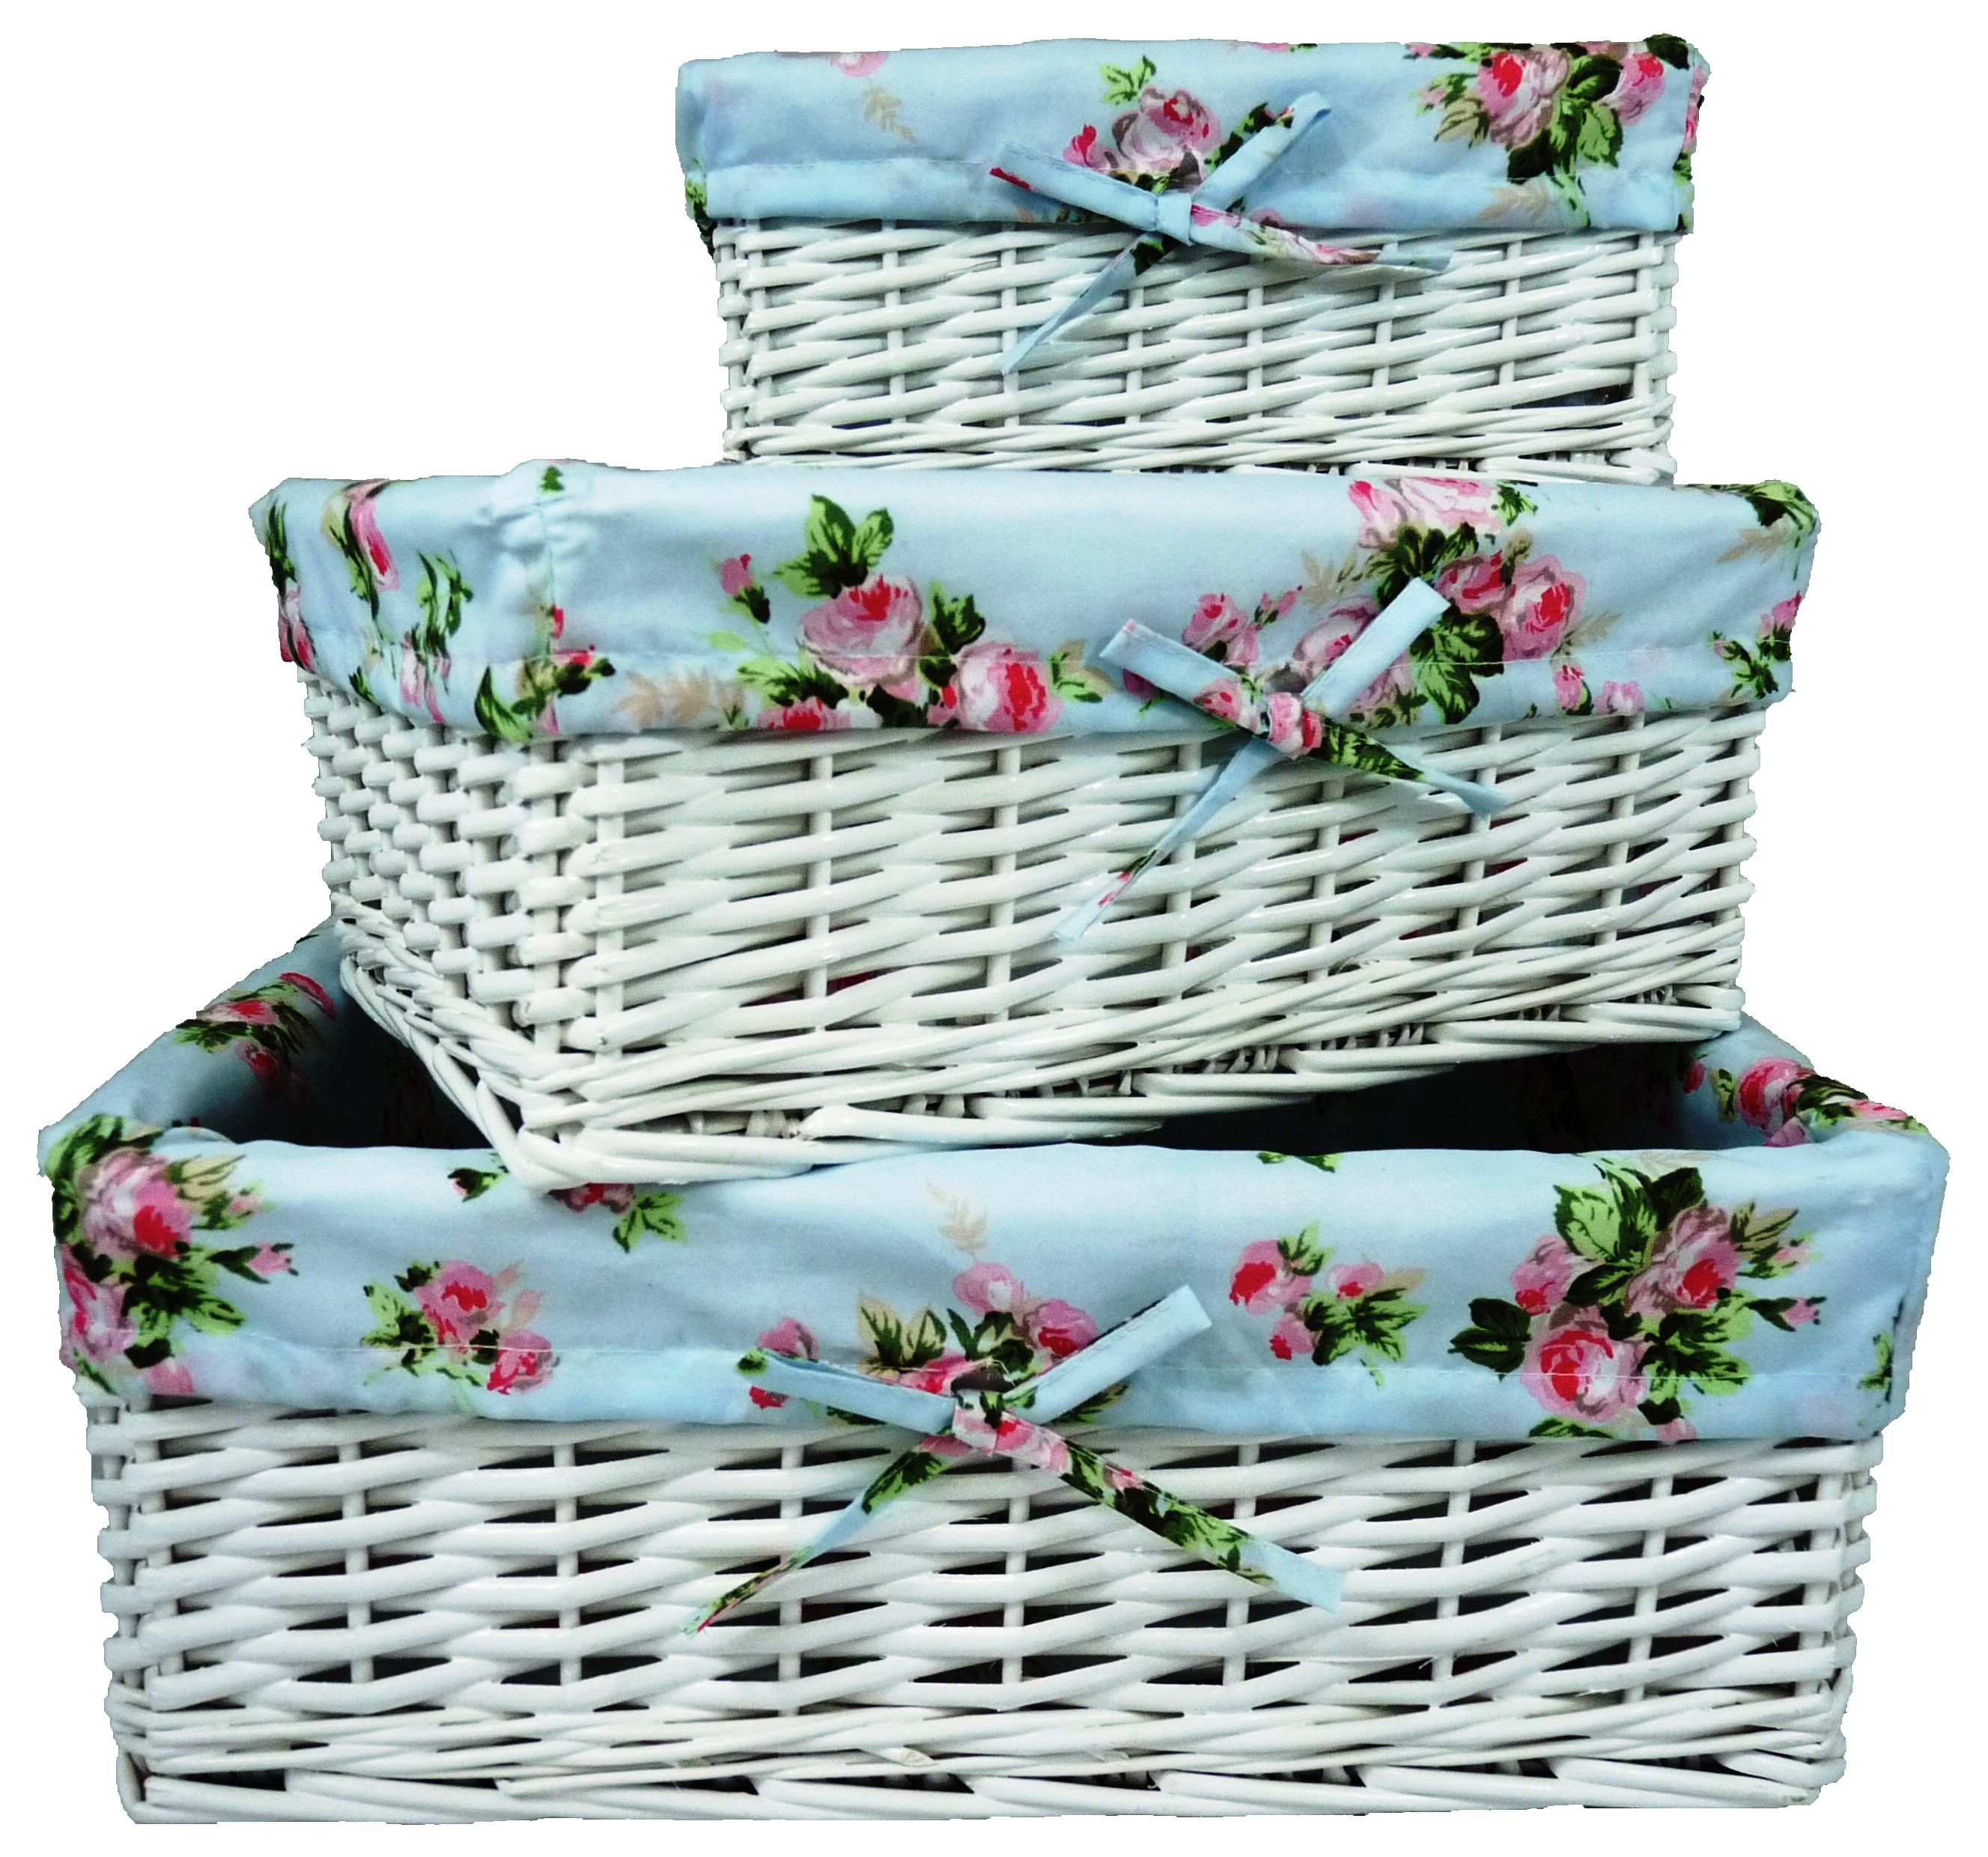 storage bins and baskets - Bing Images www.east2eden.co.uk ...